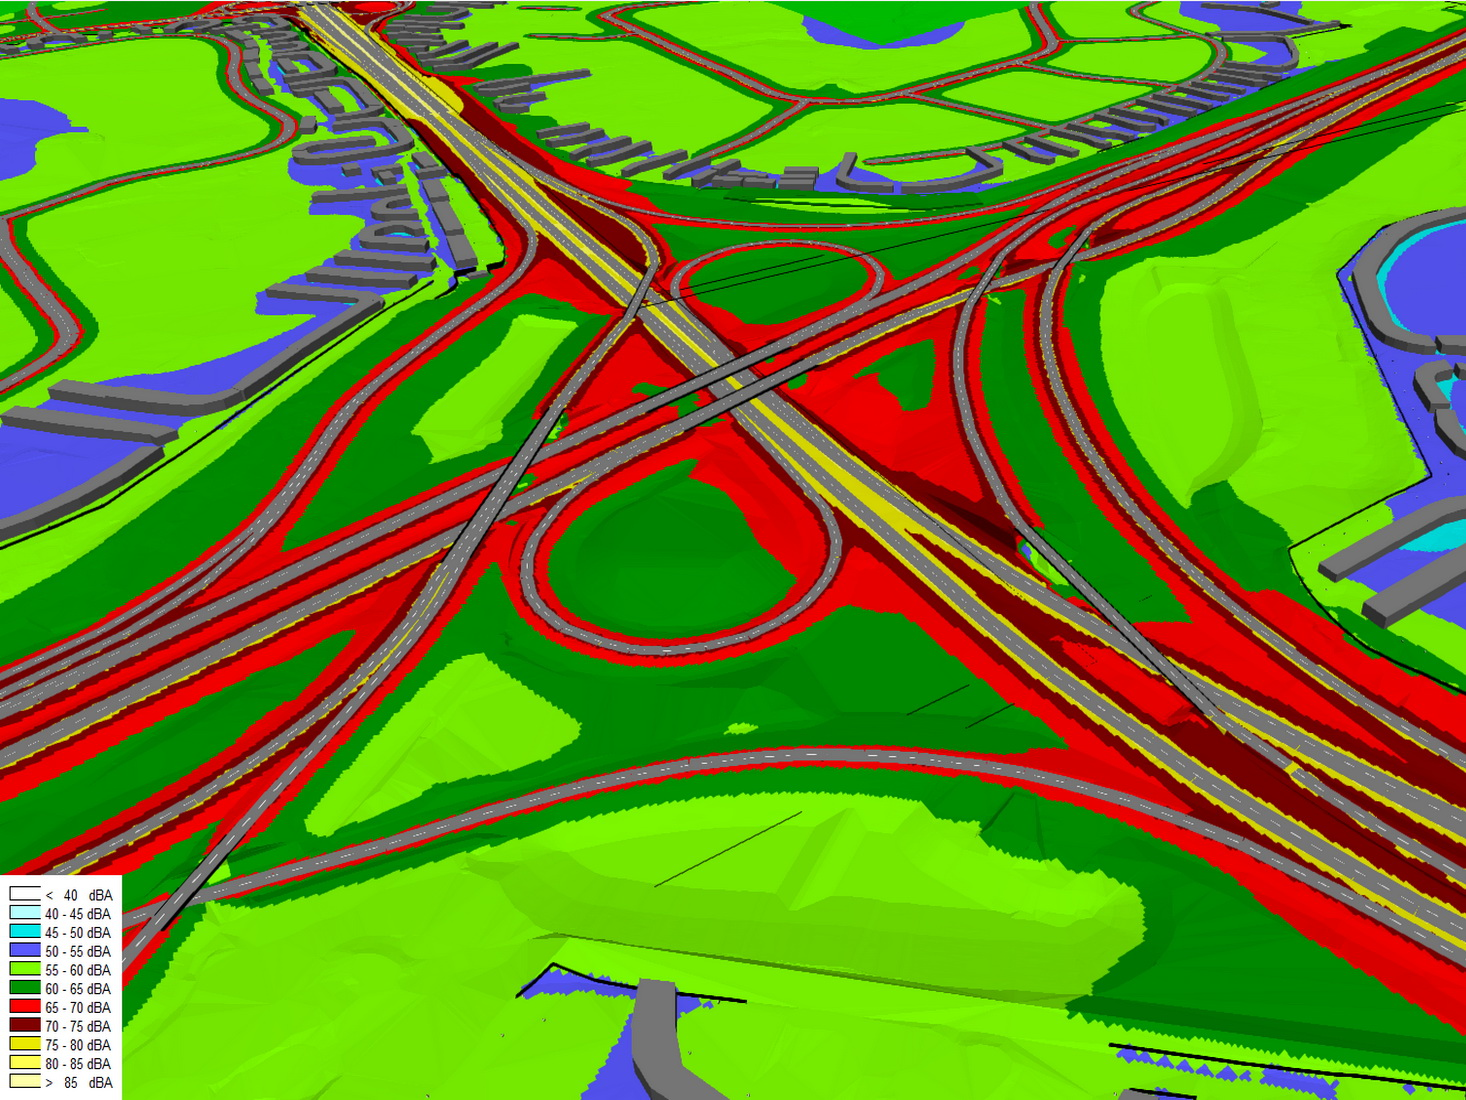 Noise Model of Large Roadway Interchange